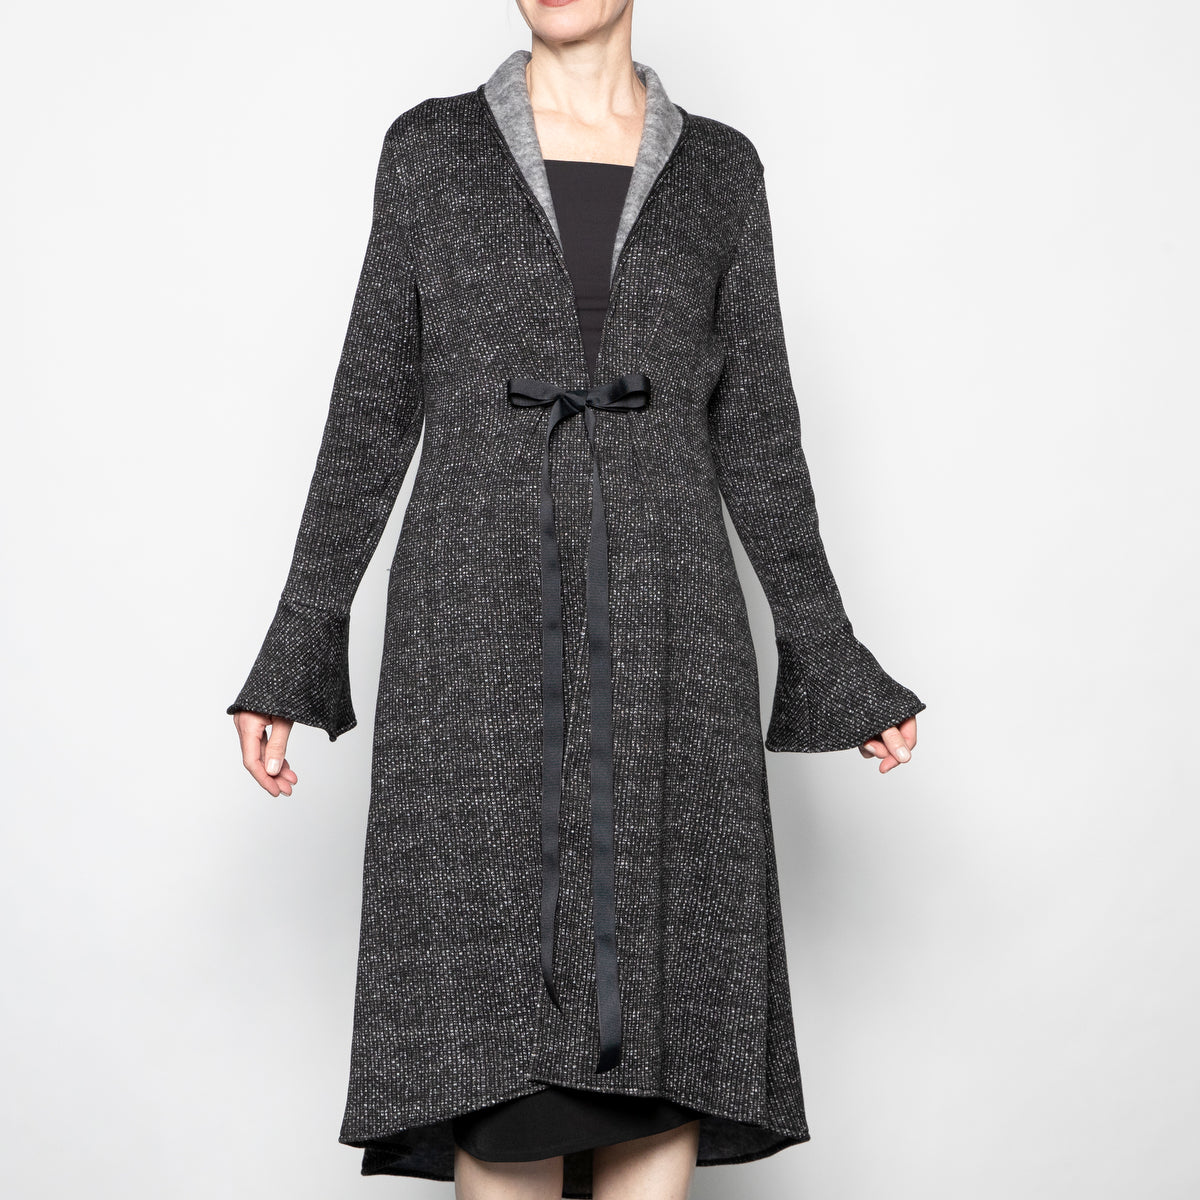 Staples-Arlene Coat in Charcoal